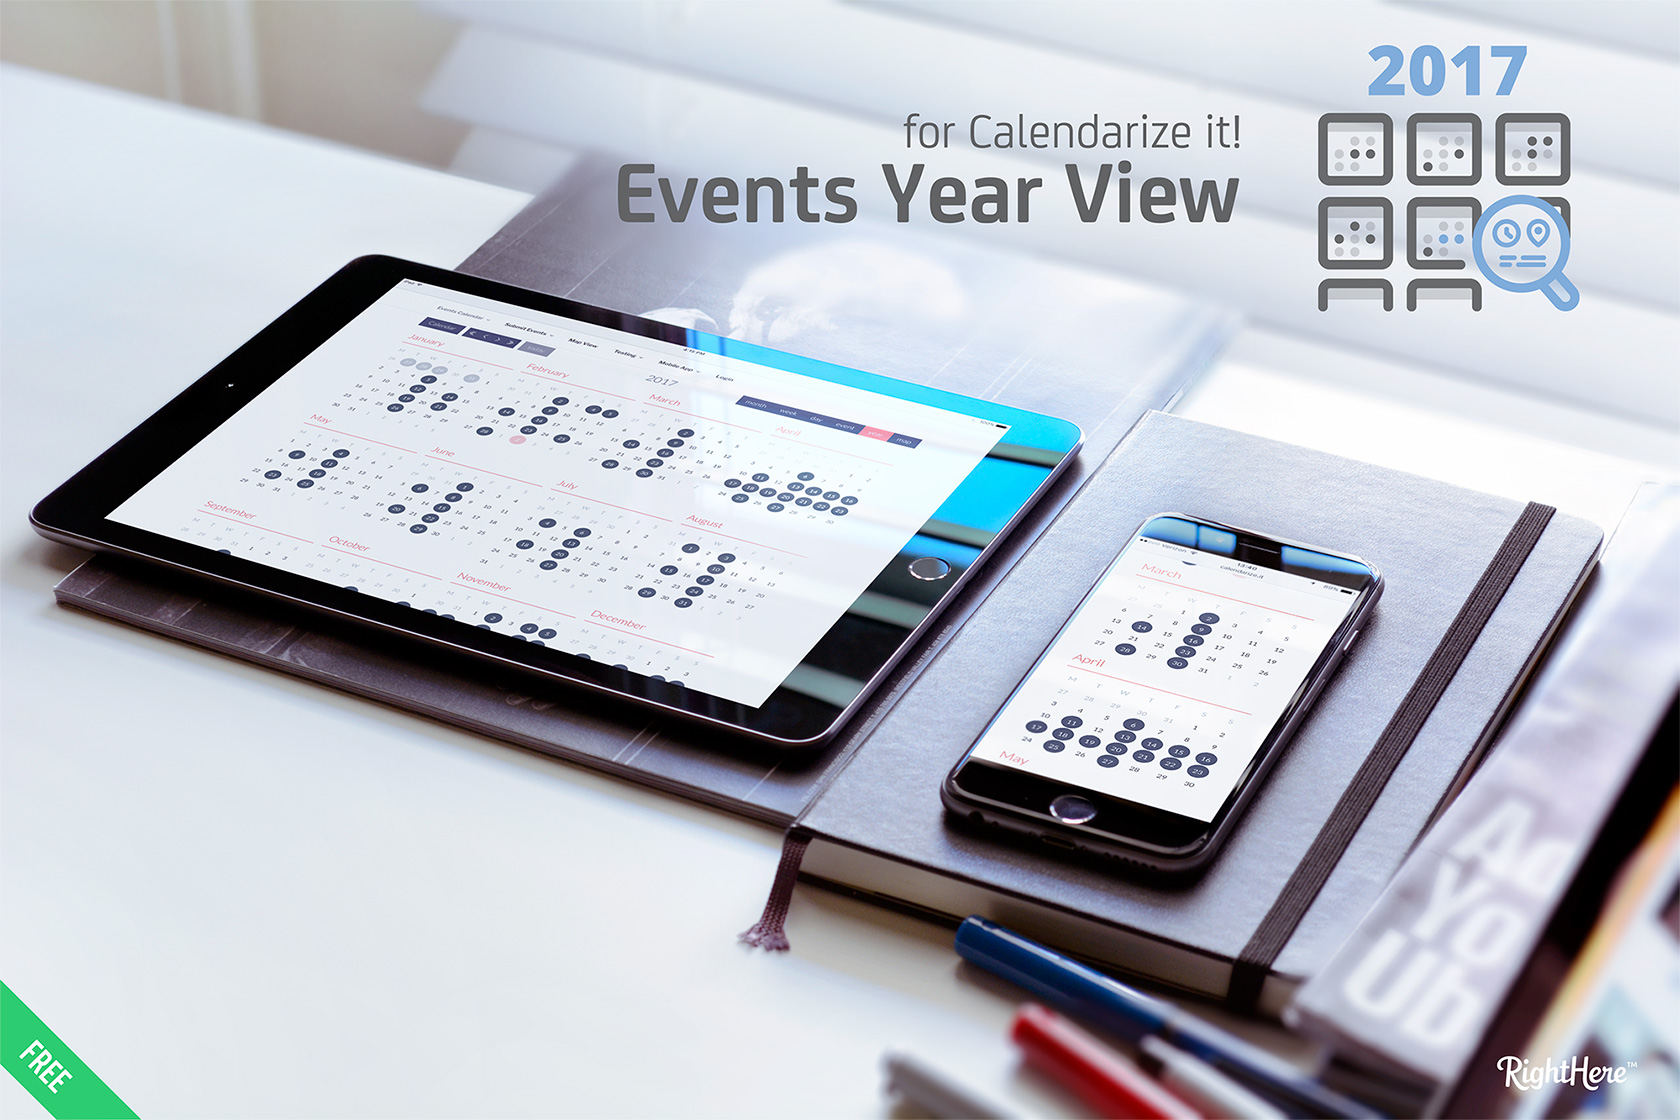 Events Year View for Calendarize it!